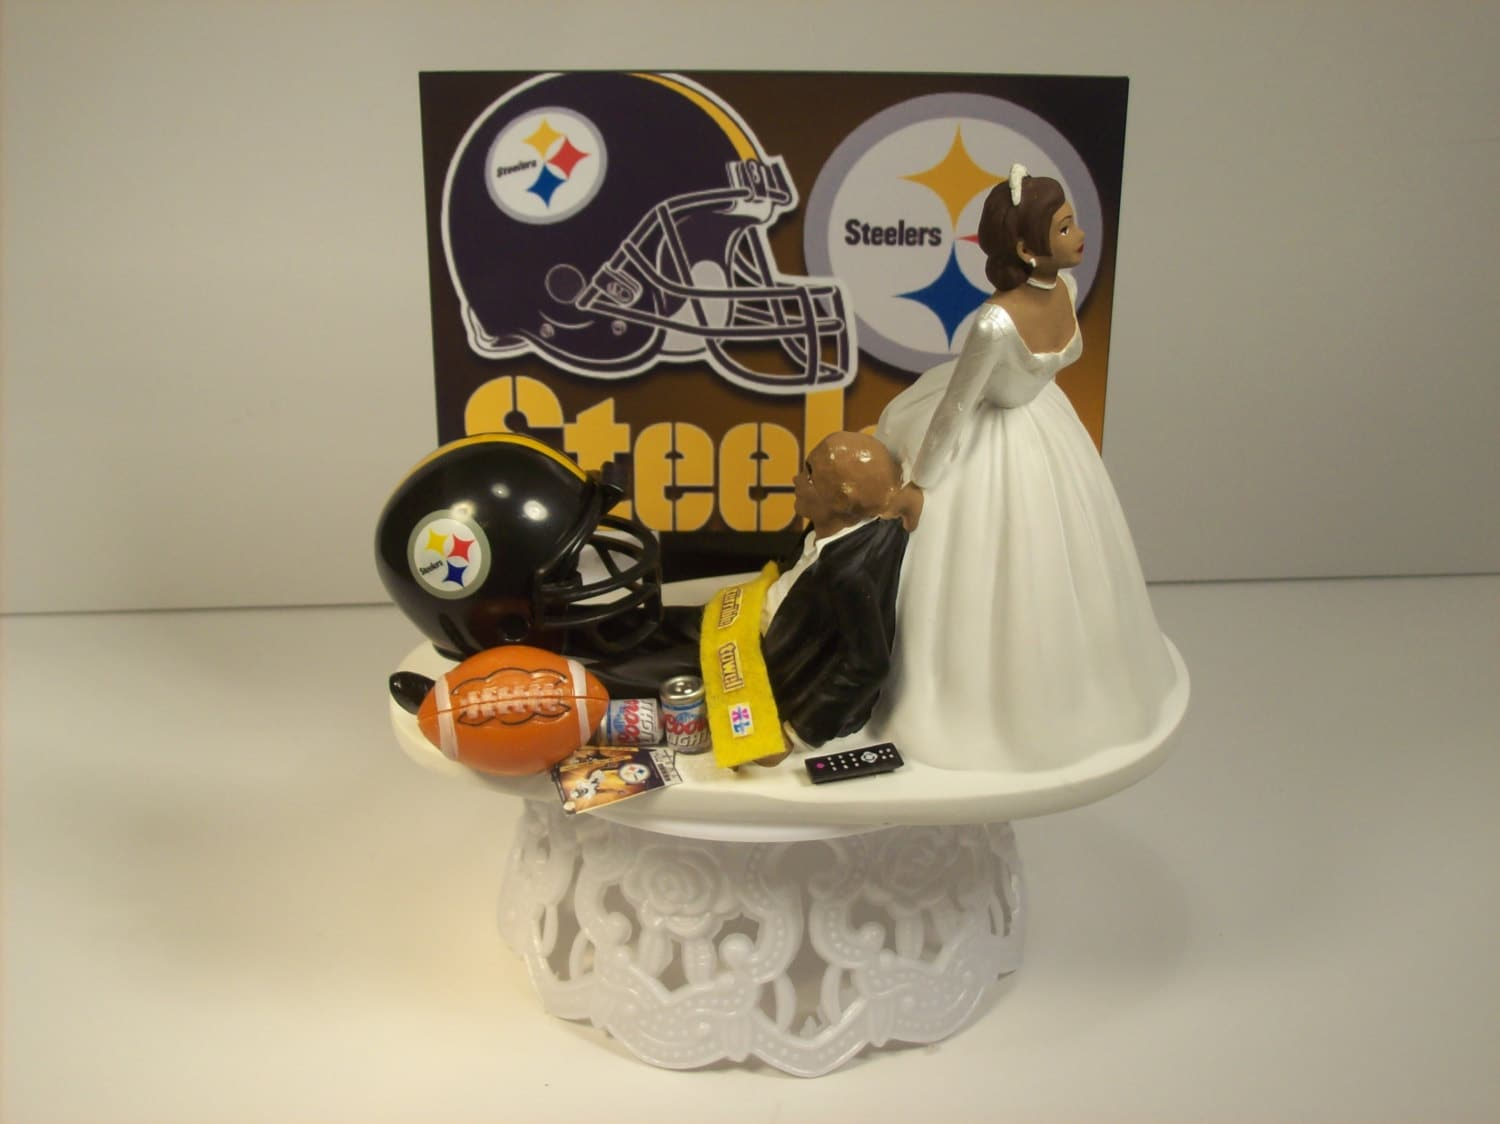 Football PITTSBURGH STEELERS African American Hispanic Couple